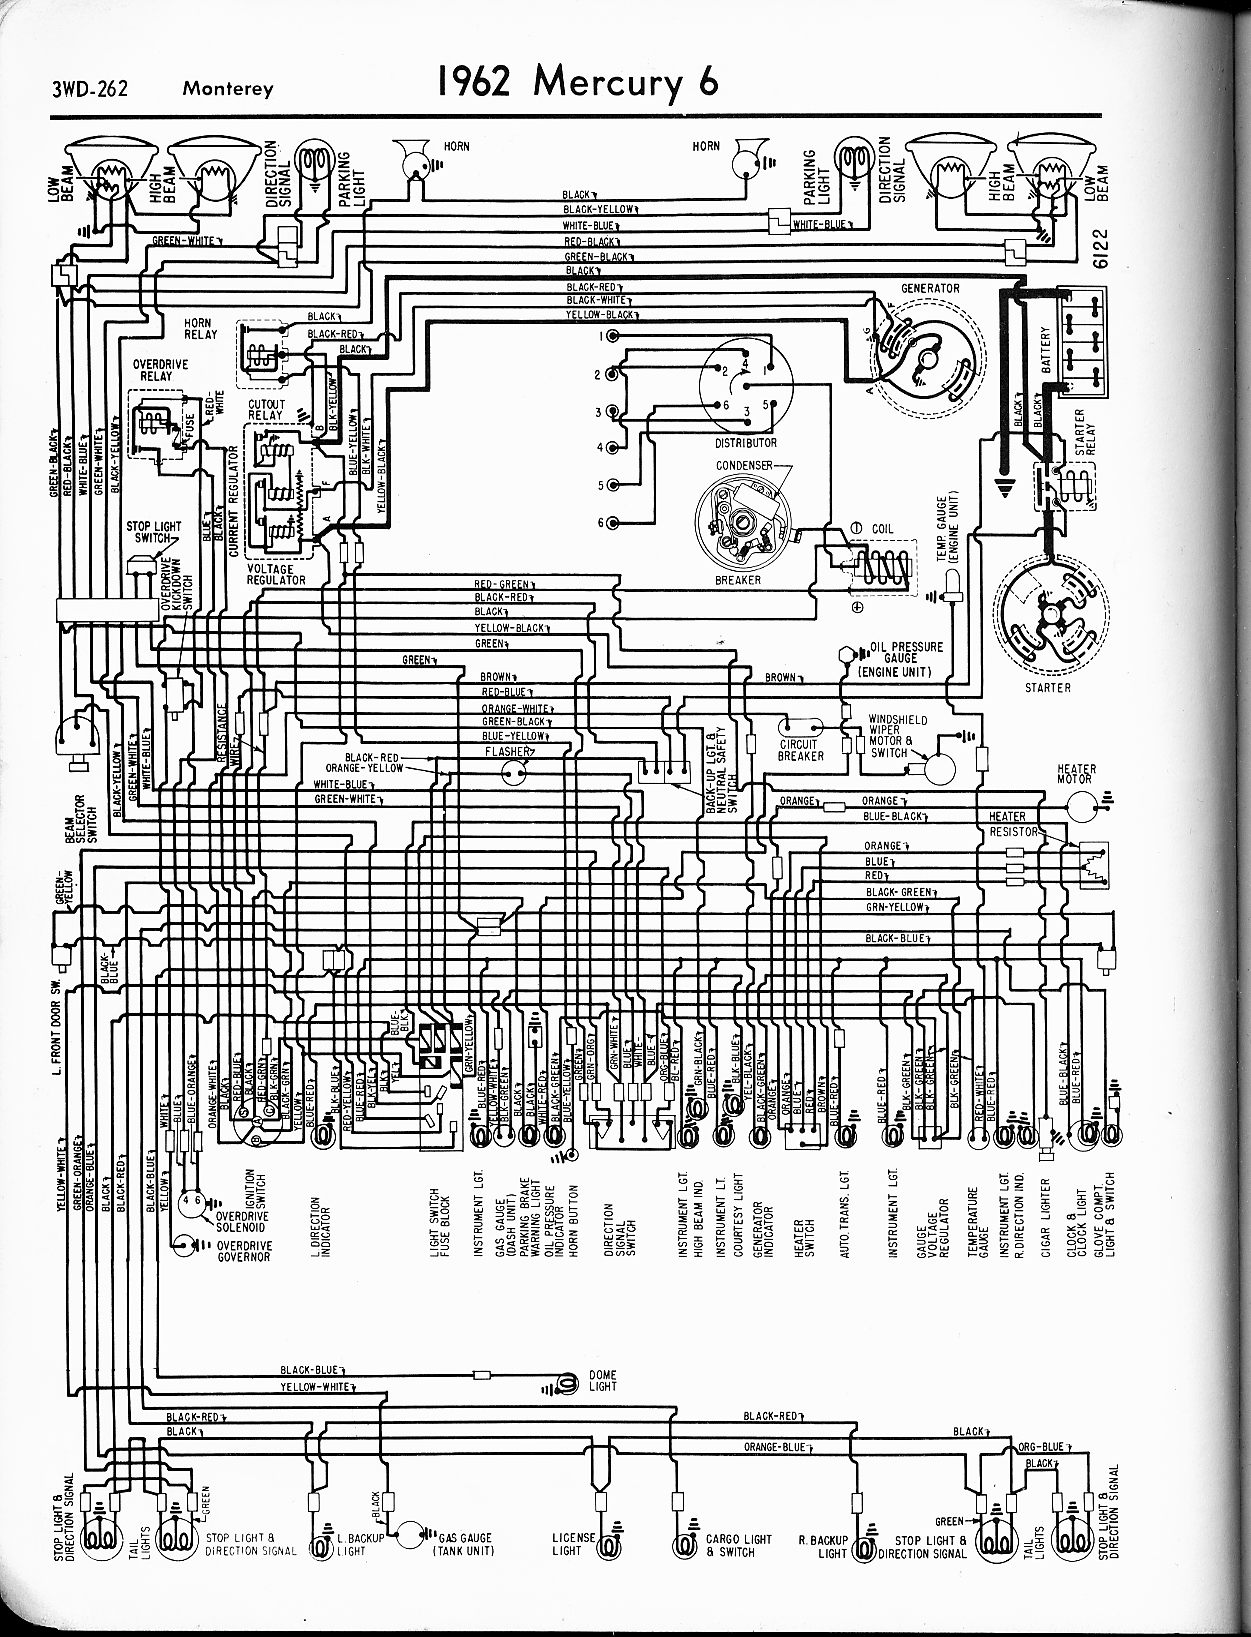 1968 Buick Gran Sport Wiring Diagram Trusted Ford Fairlane 72 Gs Enthusiast Diagrams U2022